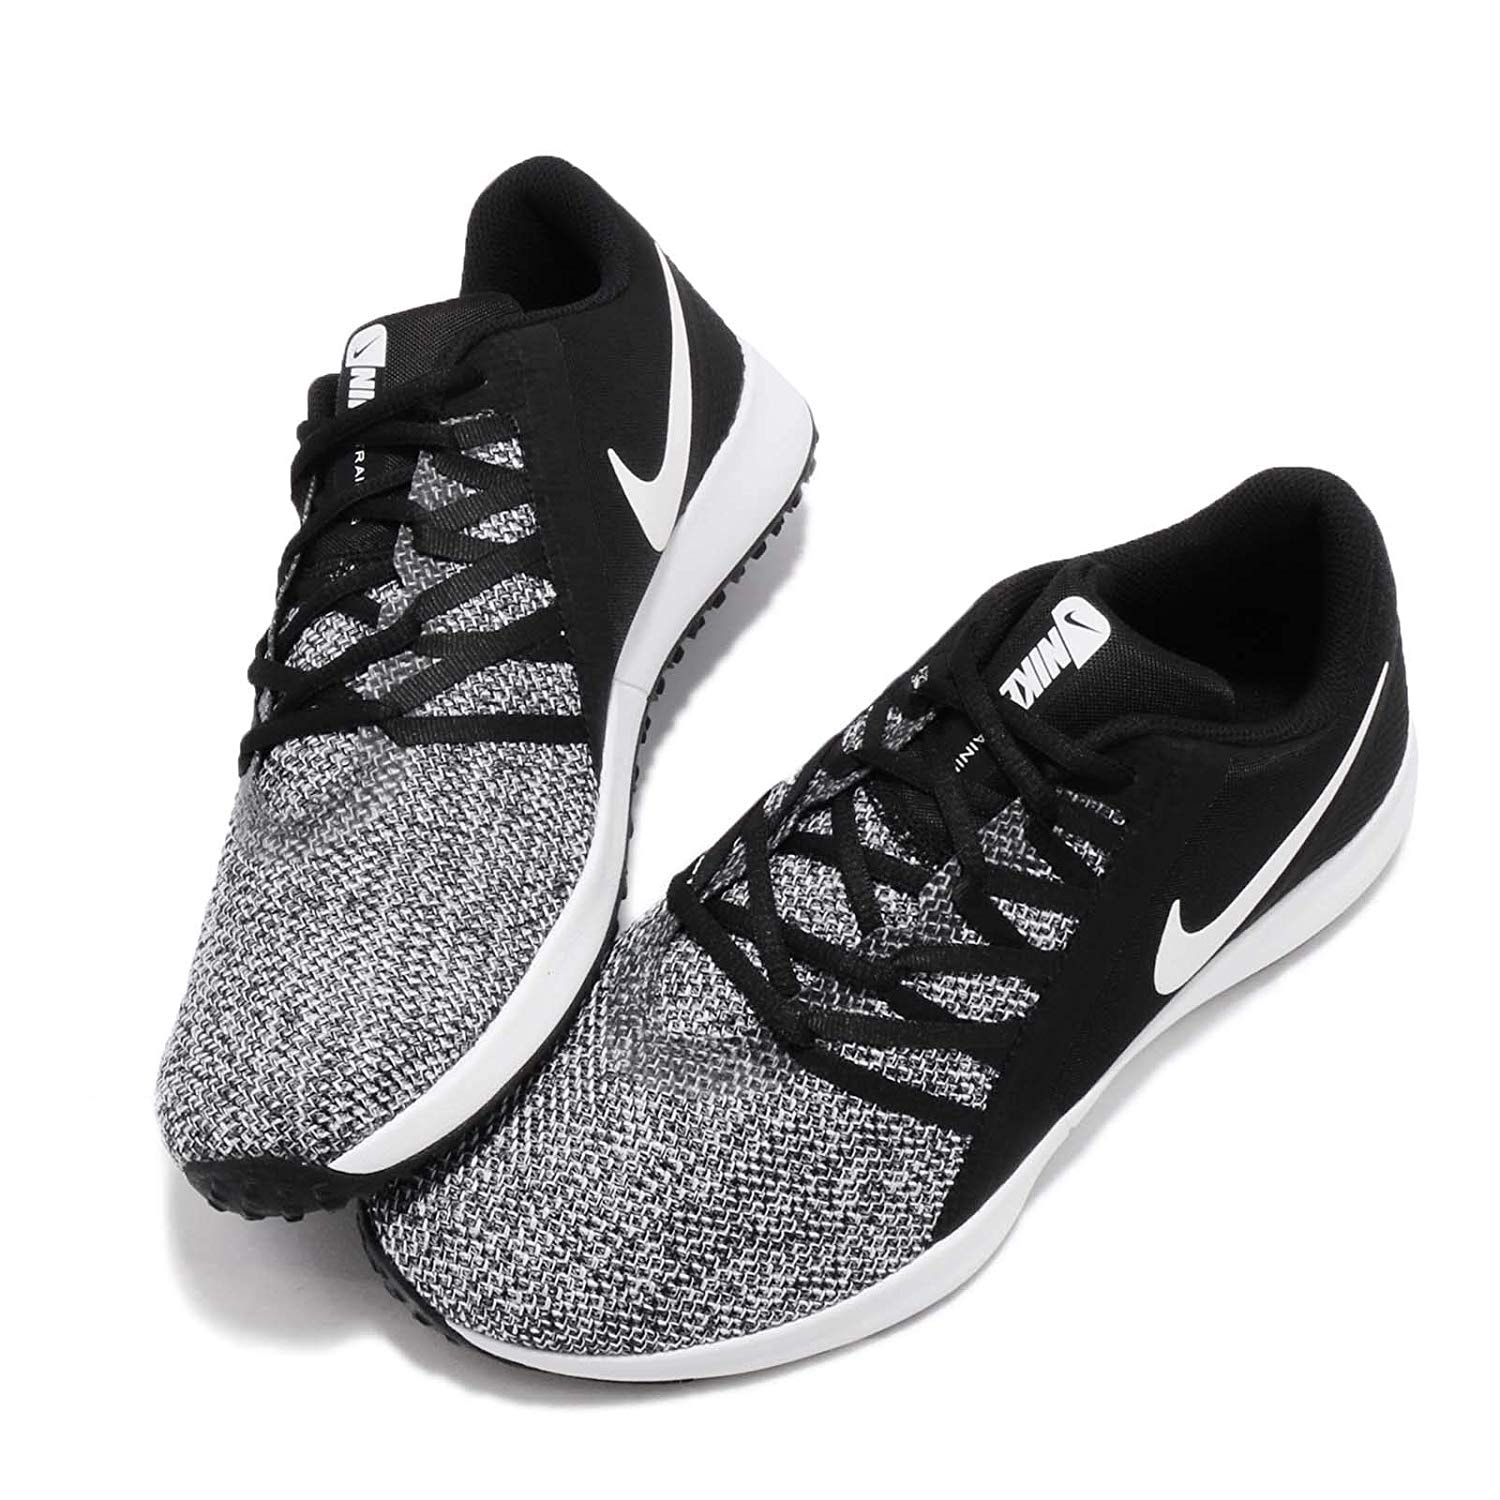 60a7b458b79 ... Shop Nike Varsity Compete Trainer Mens Aa7064-001 Size 14 - Free  Shipping Today ...